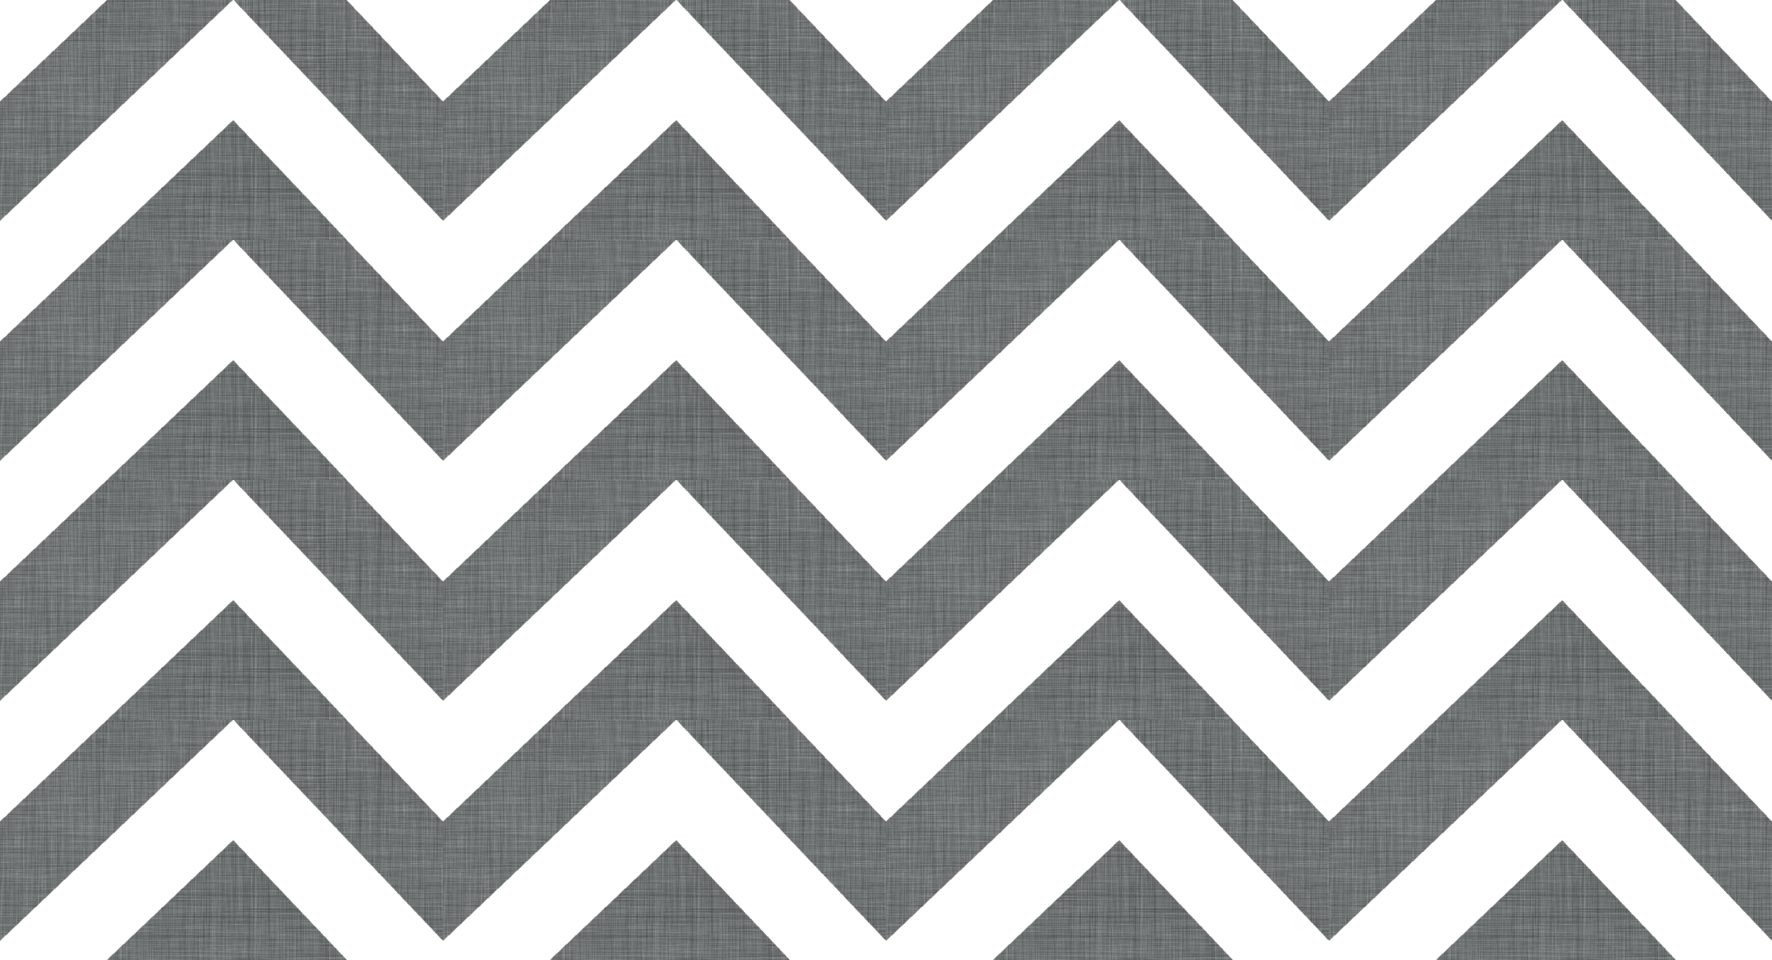 chevron style wallpaper - photo #26